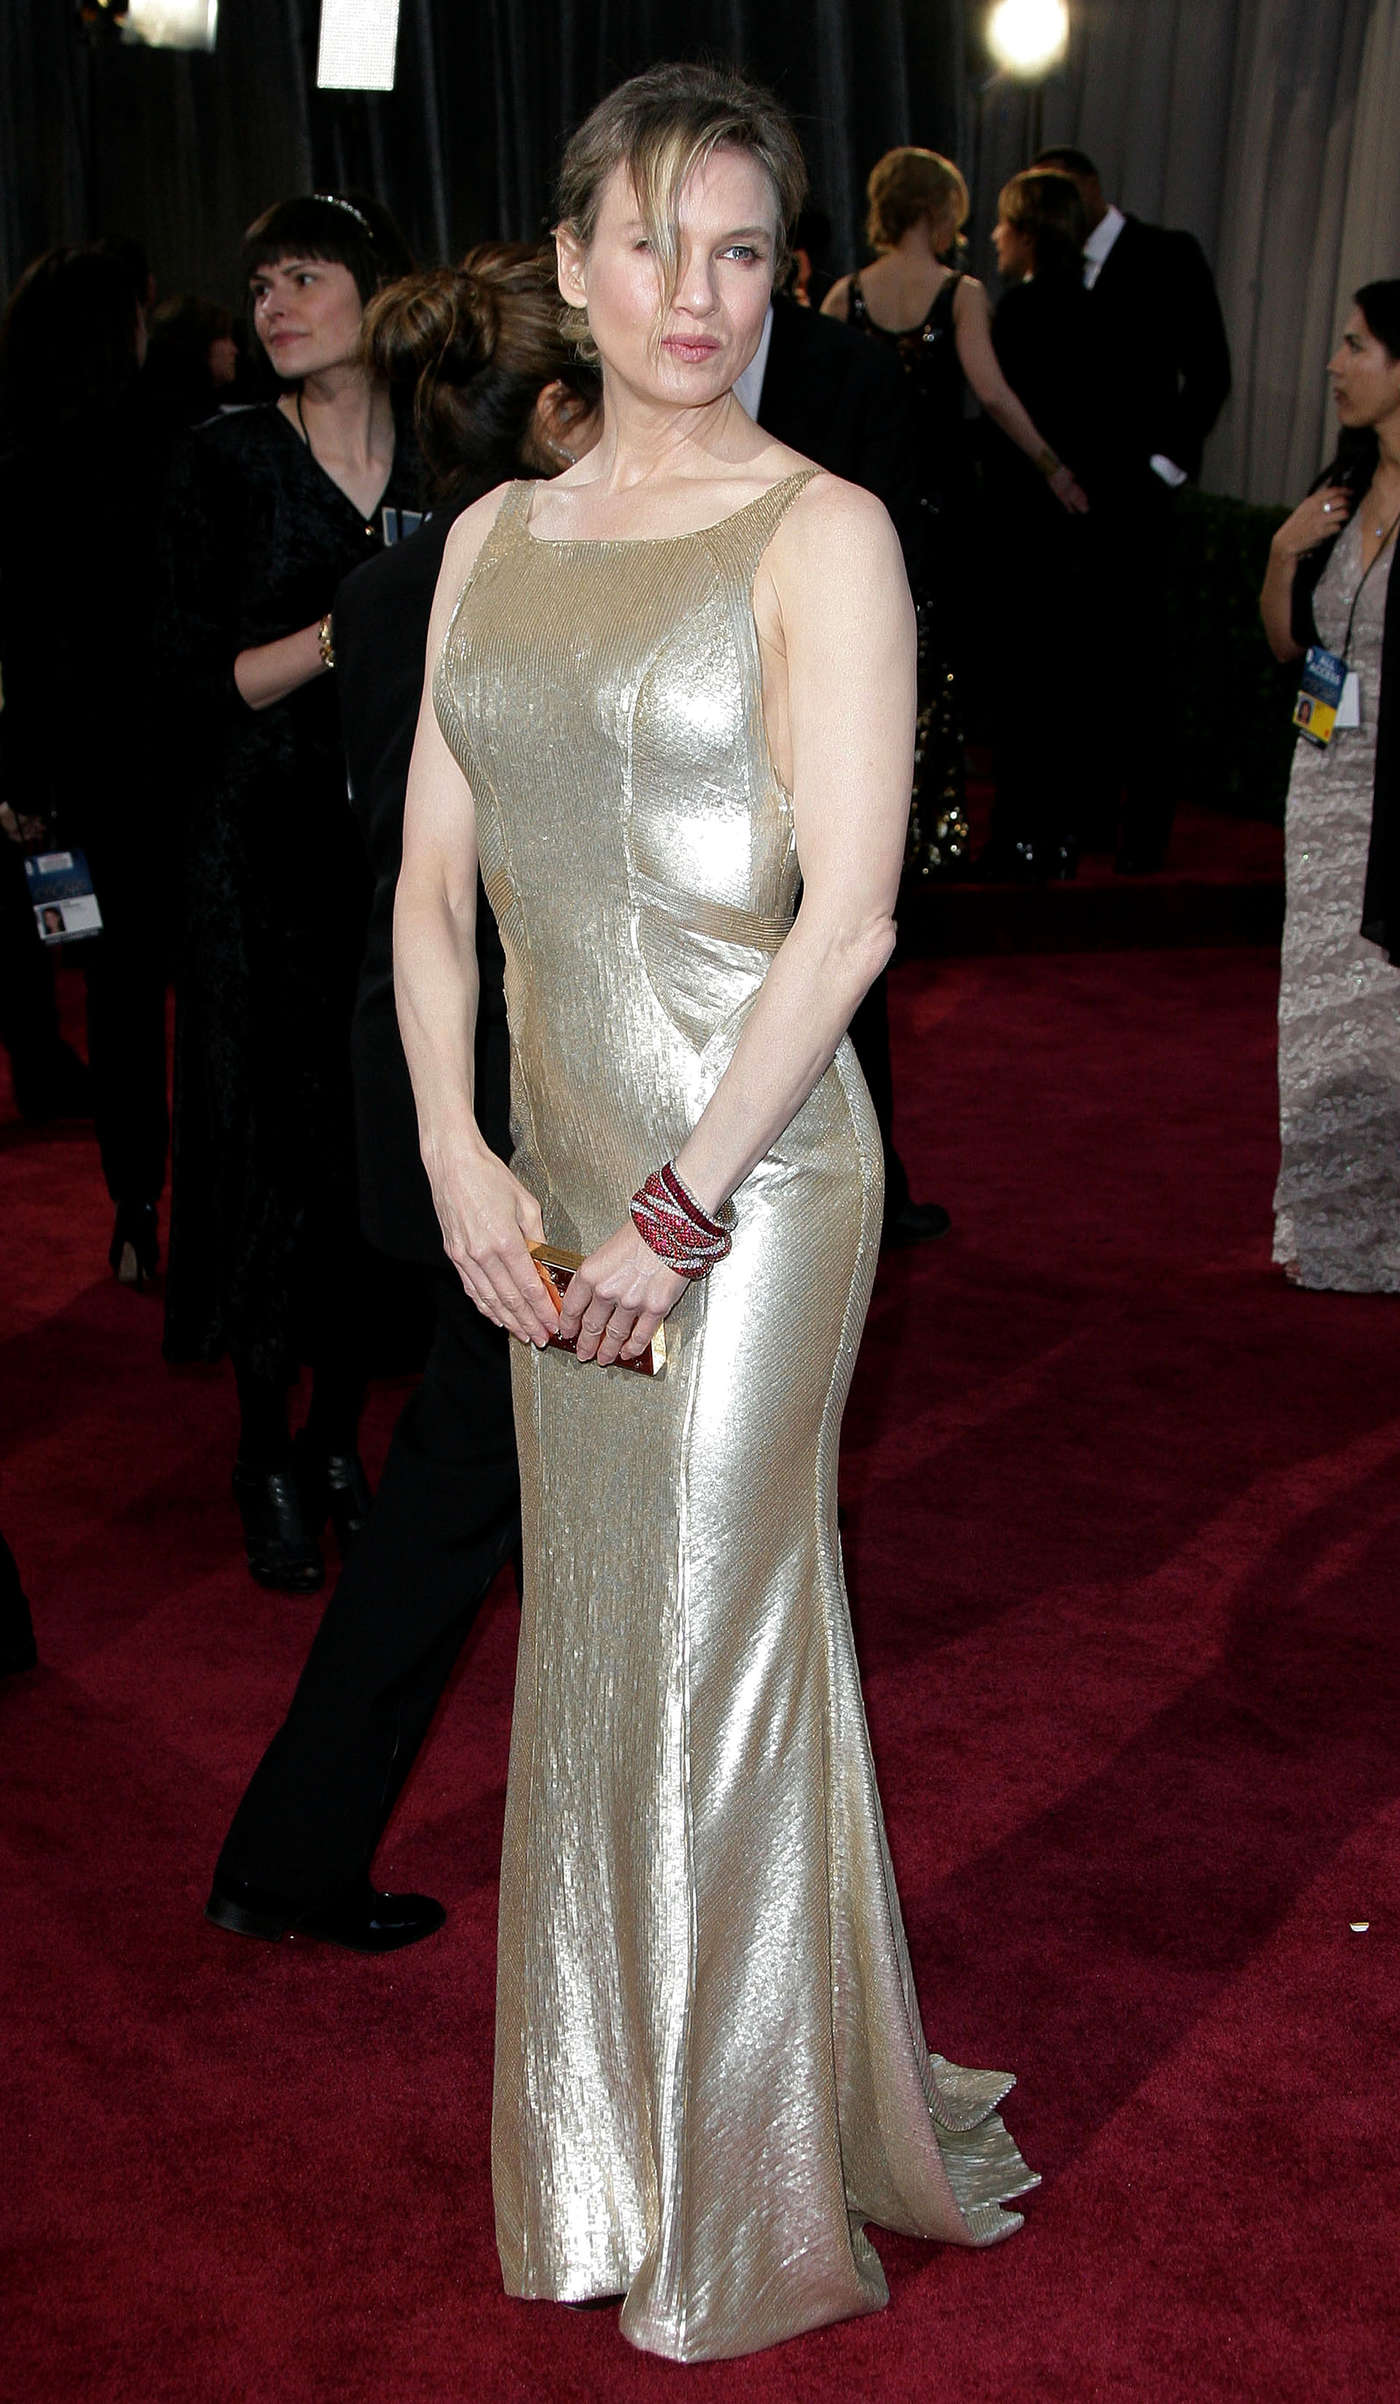 Renee Zellweger Oscars 2013 05 on 85th academy awards